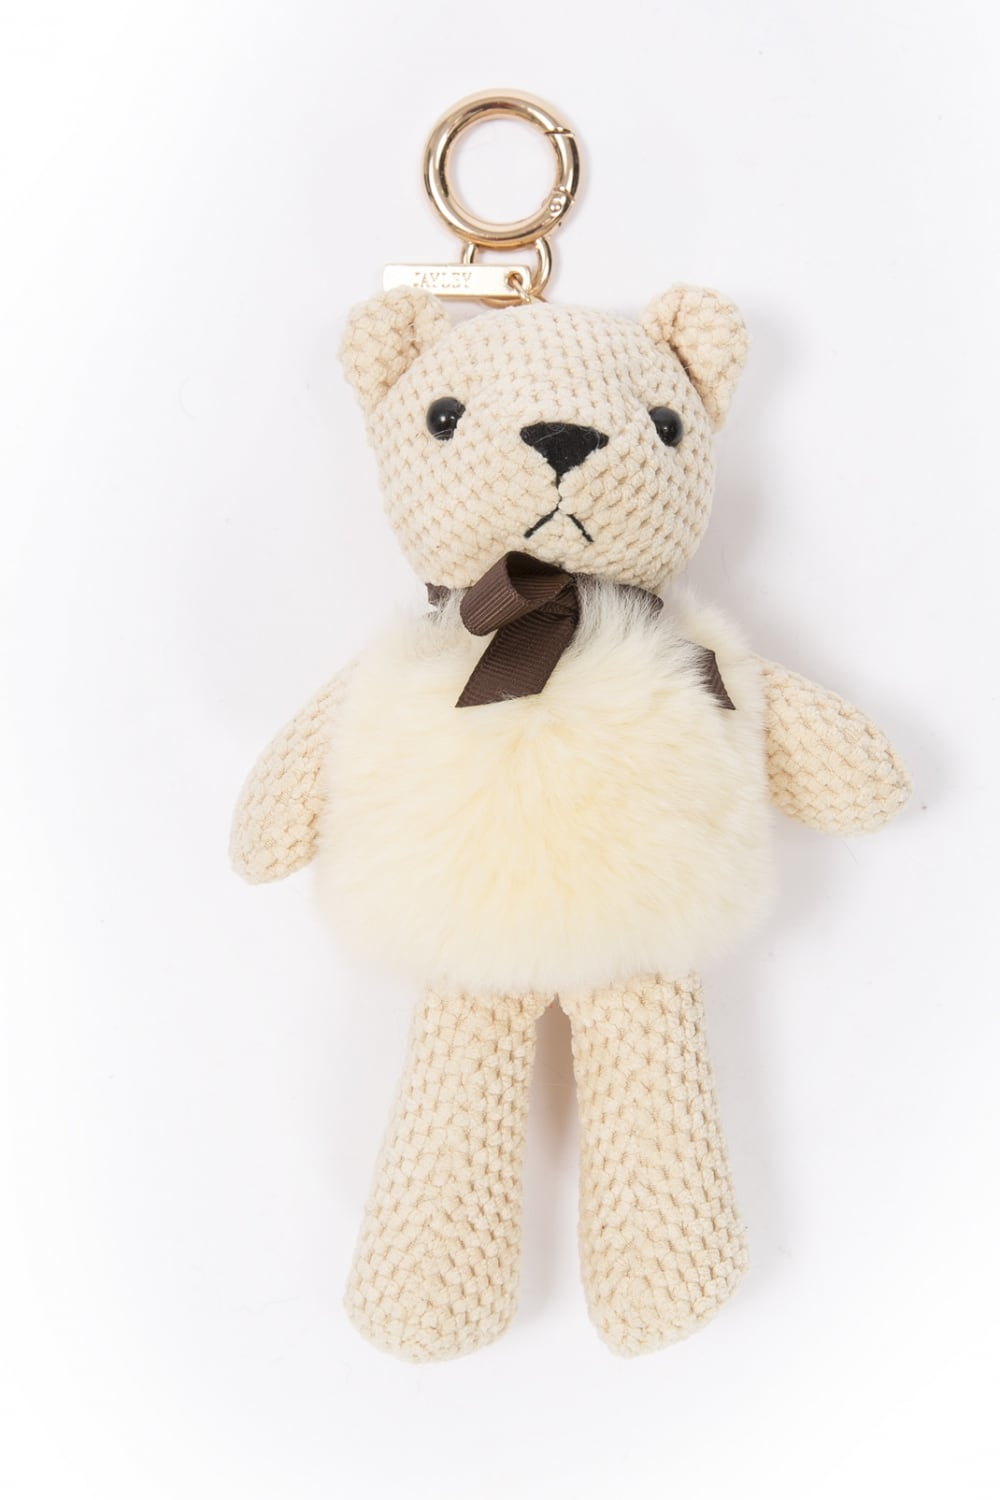 jayley-teddy-bear-p1037-10554_image